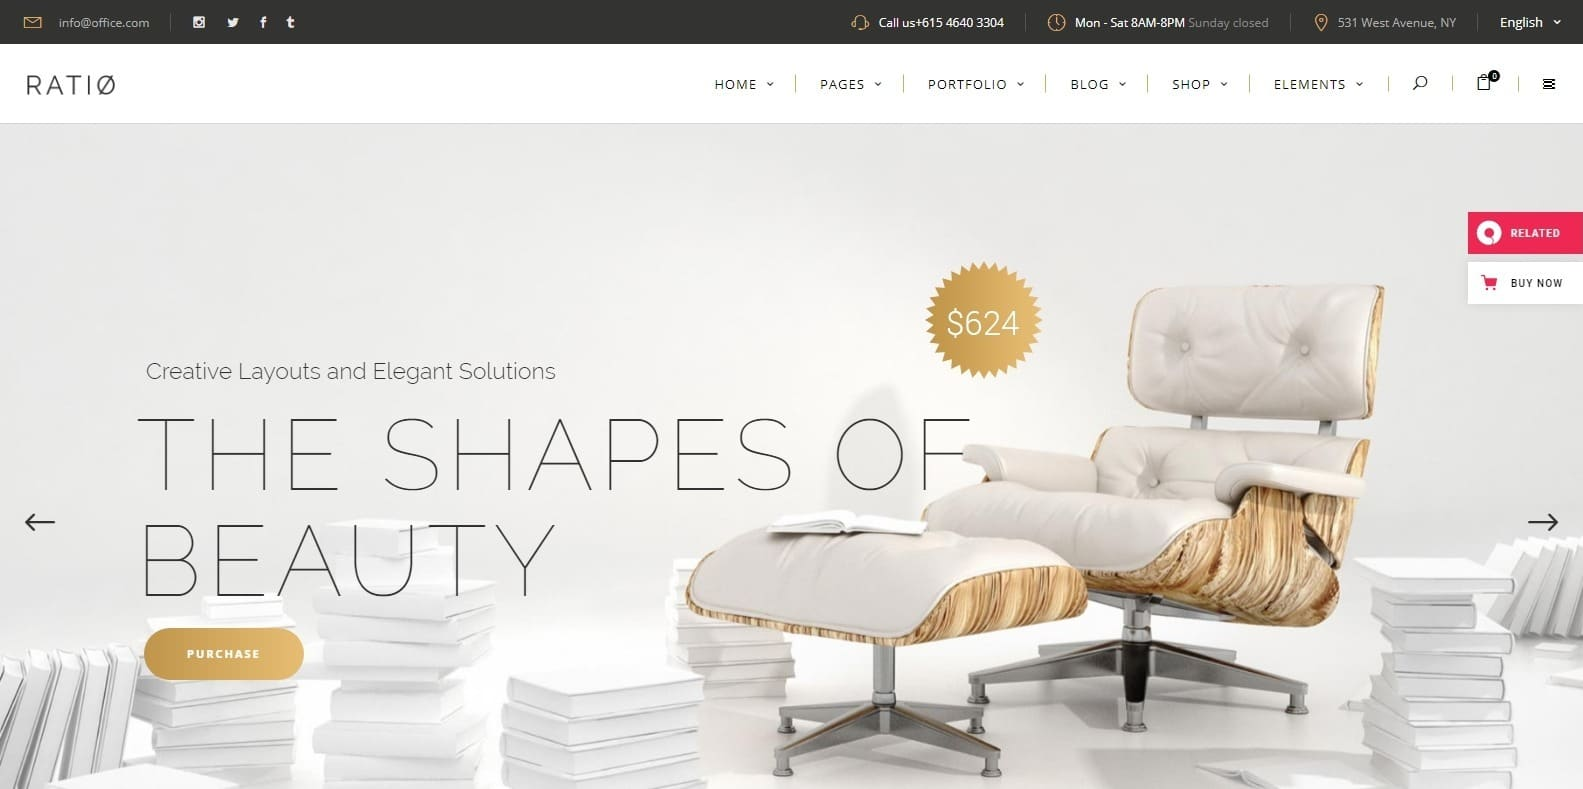 ratio-interior-design-wordpress-theme